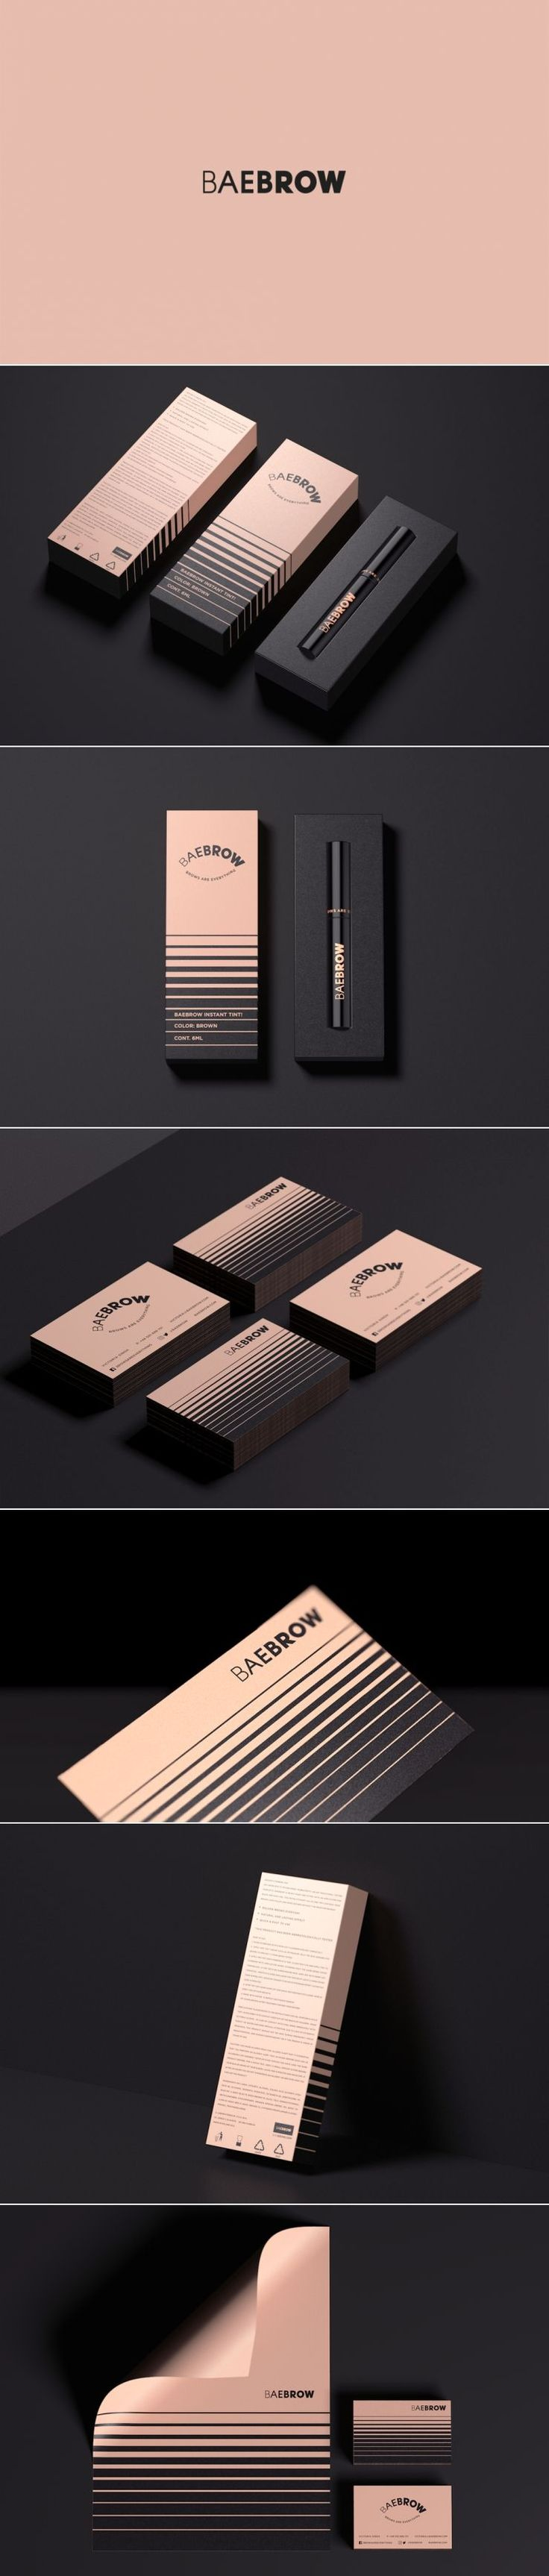 Baebrow Cosmetics — The Dieline - Branding & Packaging Design